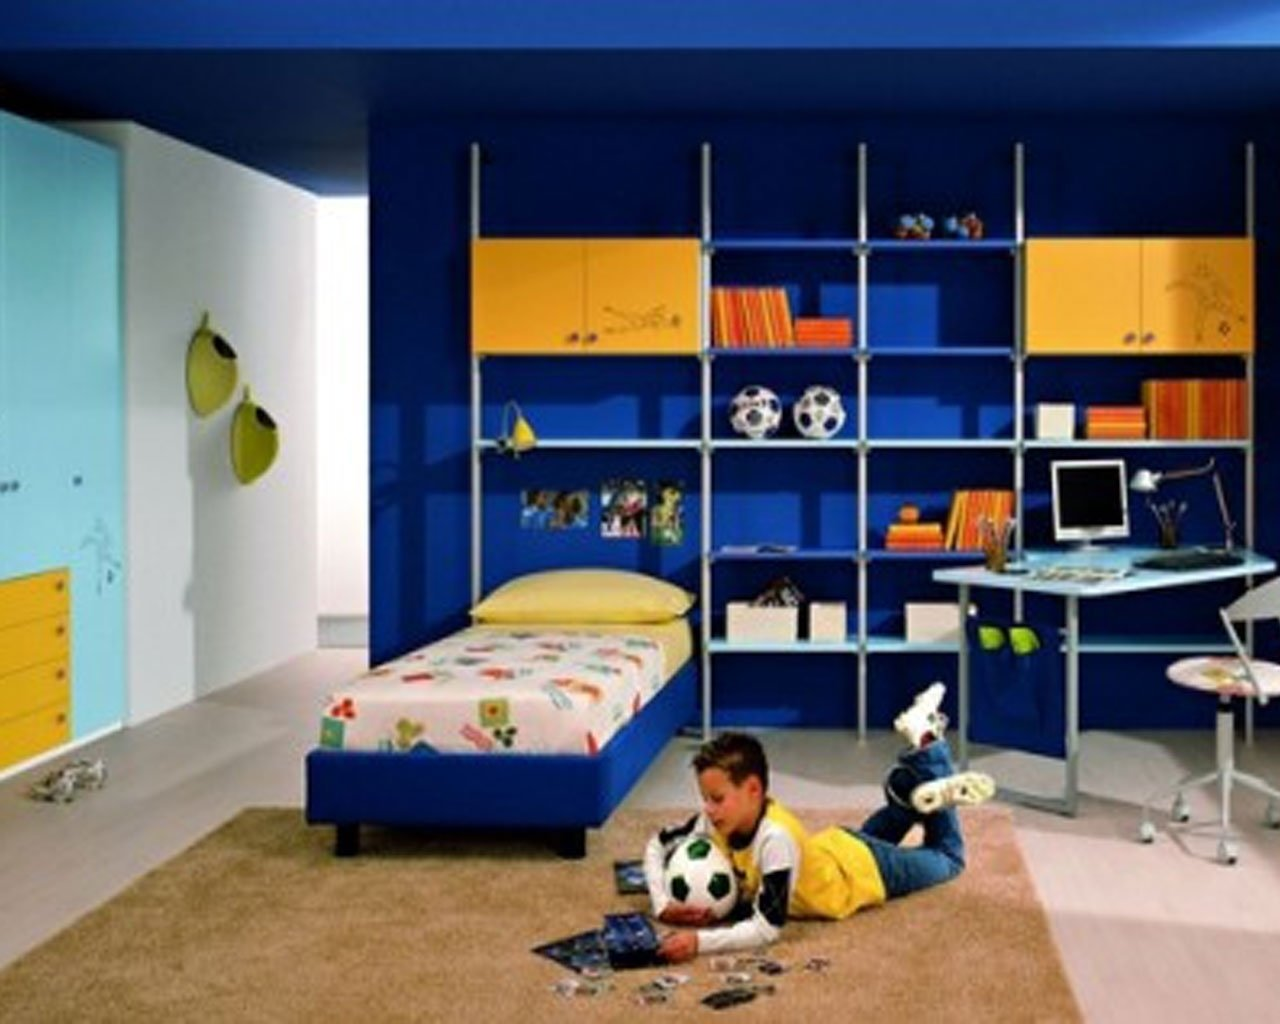 10 Wonderful Small Bedroom Ideas For Boys boys bedroom ideas and themes stylid homes 1 2020